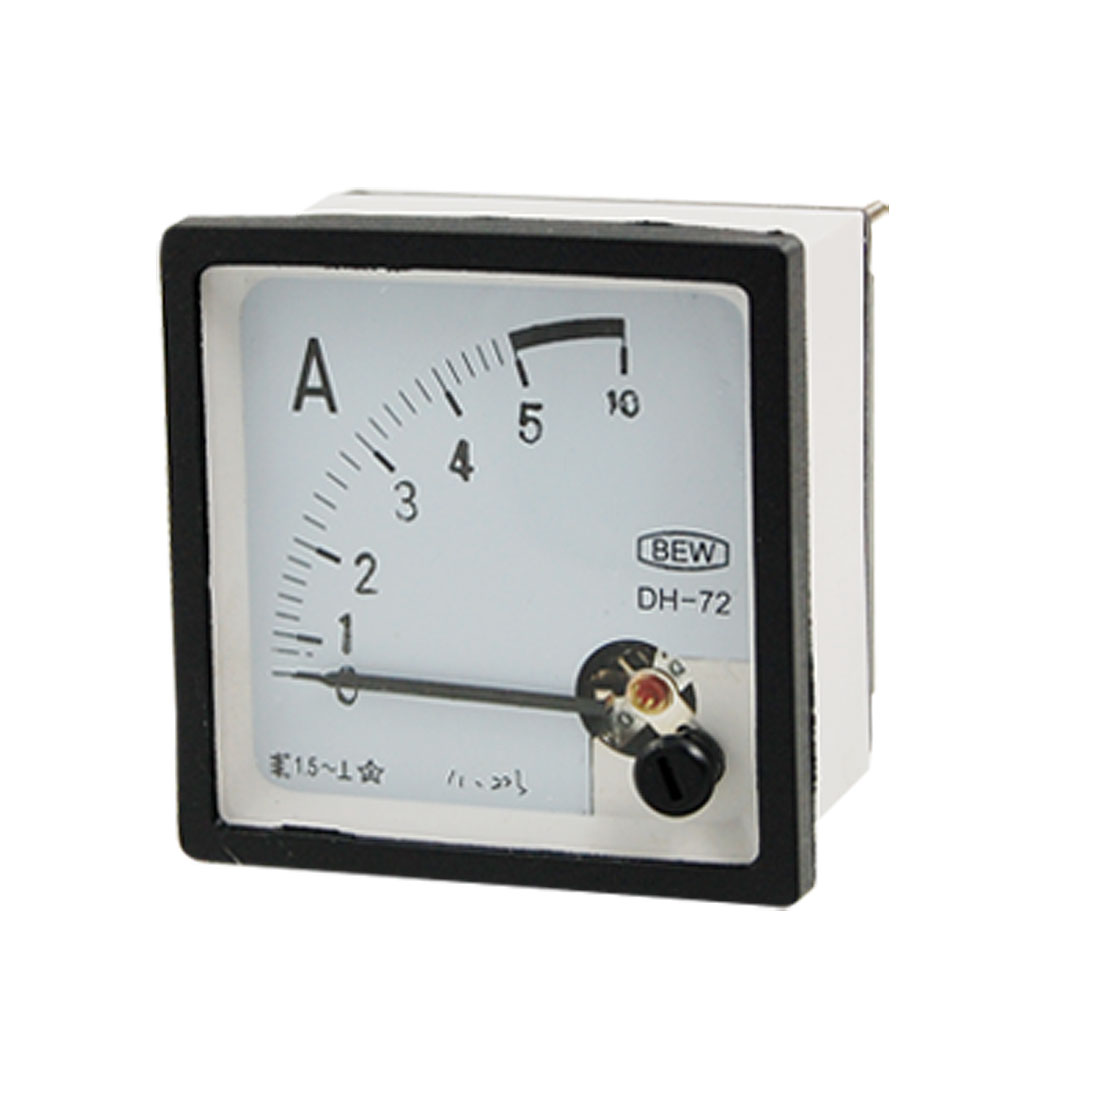 Plastic Housing 5A Analog AC Current Mounted Panel Meter Gauge